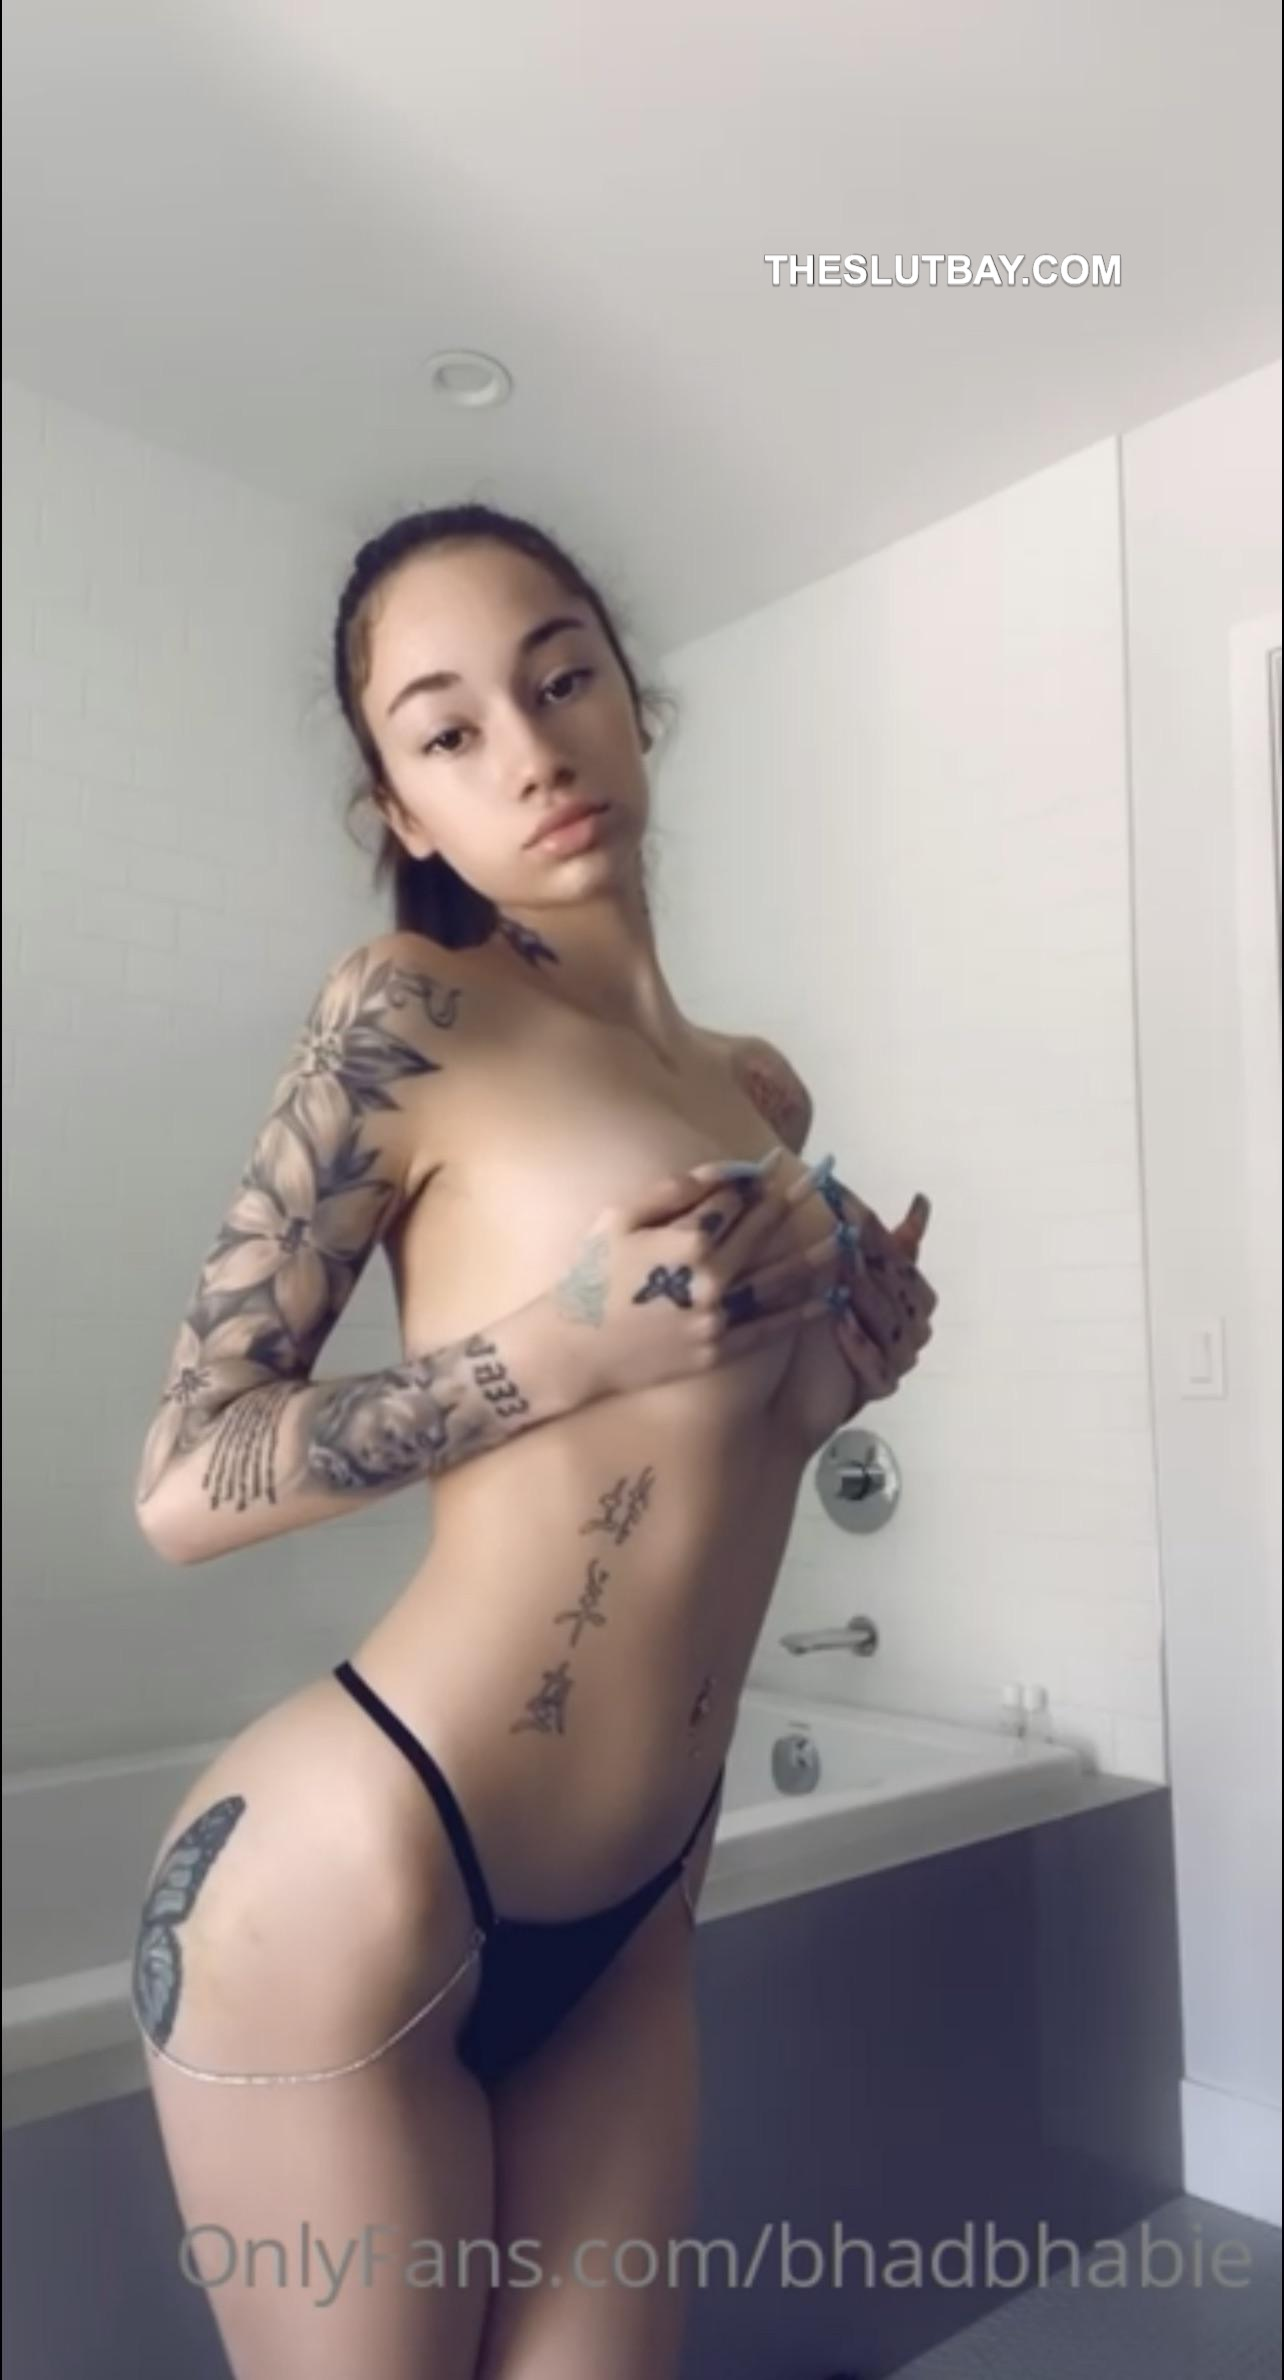 FULL VIDEO: Bhad Bhabie Nude Danielle Bregoli Onlyfans! *RATED*